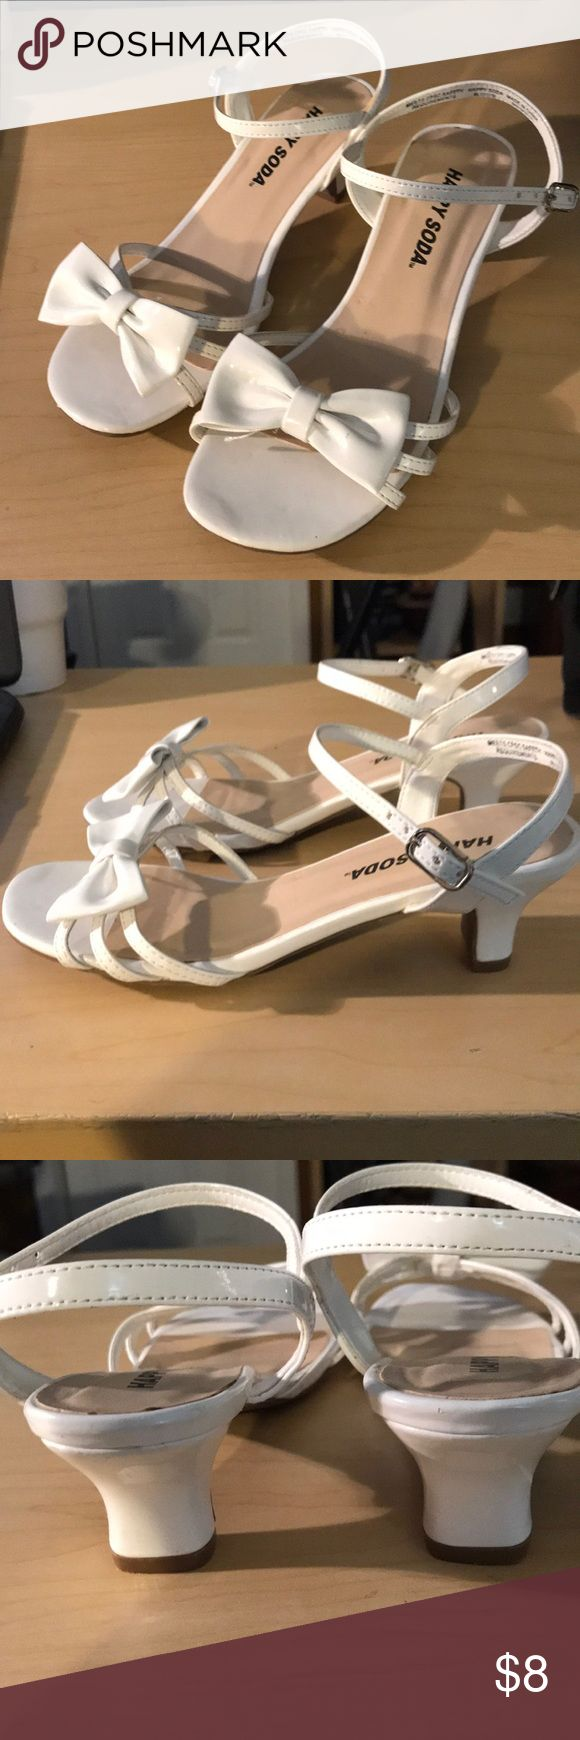 "Girls White heal Sandals / Dress Shoes Perfect for Easter! White patent sandals with small 2"" heal Worn very little. Does have minor wear as seen in pictures Shoes Sandals & Flip Flops"